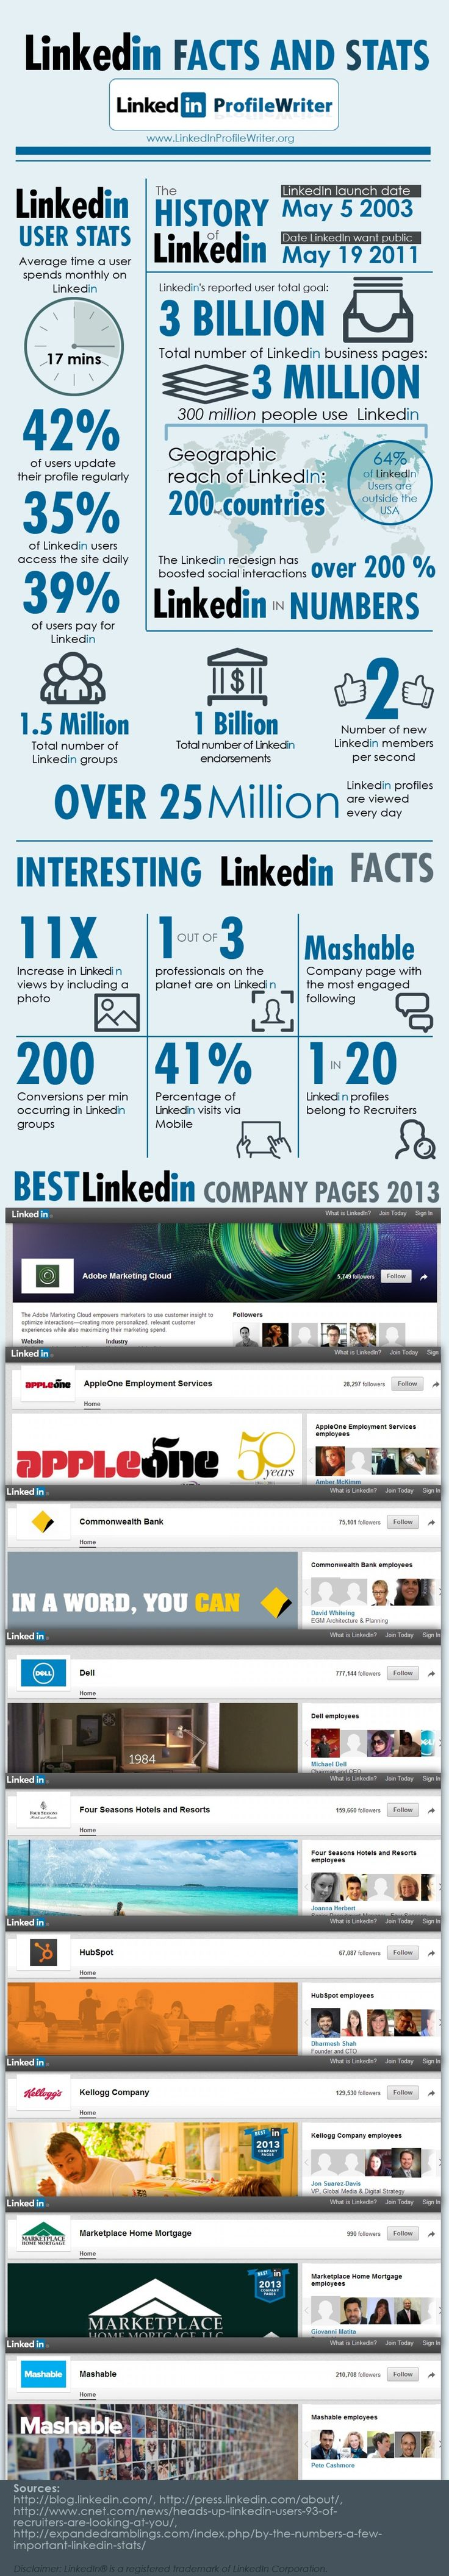 LinkedIn Facts and Stats #infographic #demographic #smm